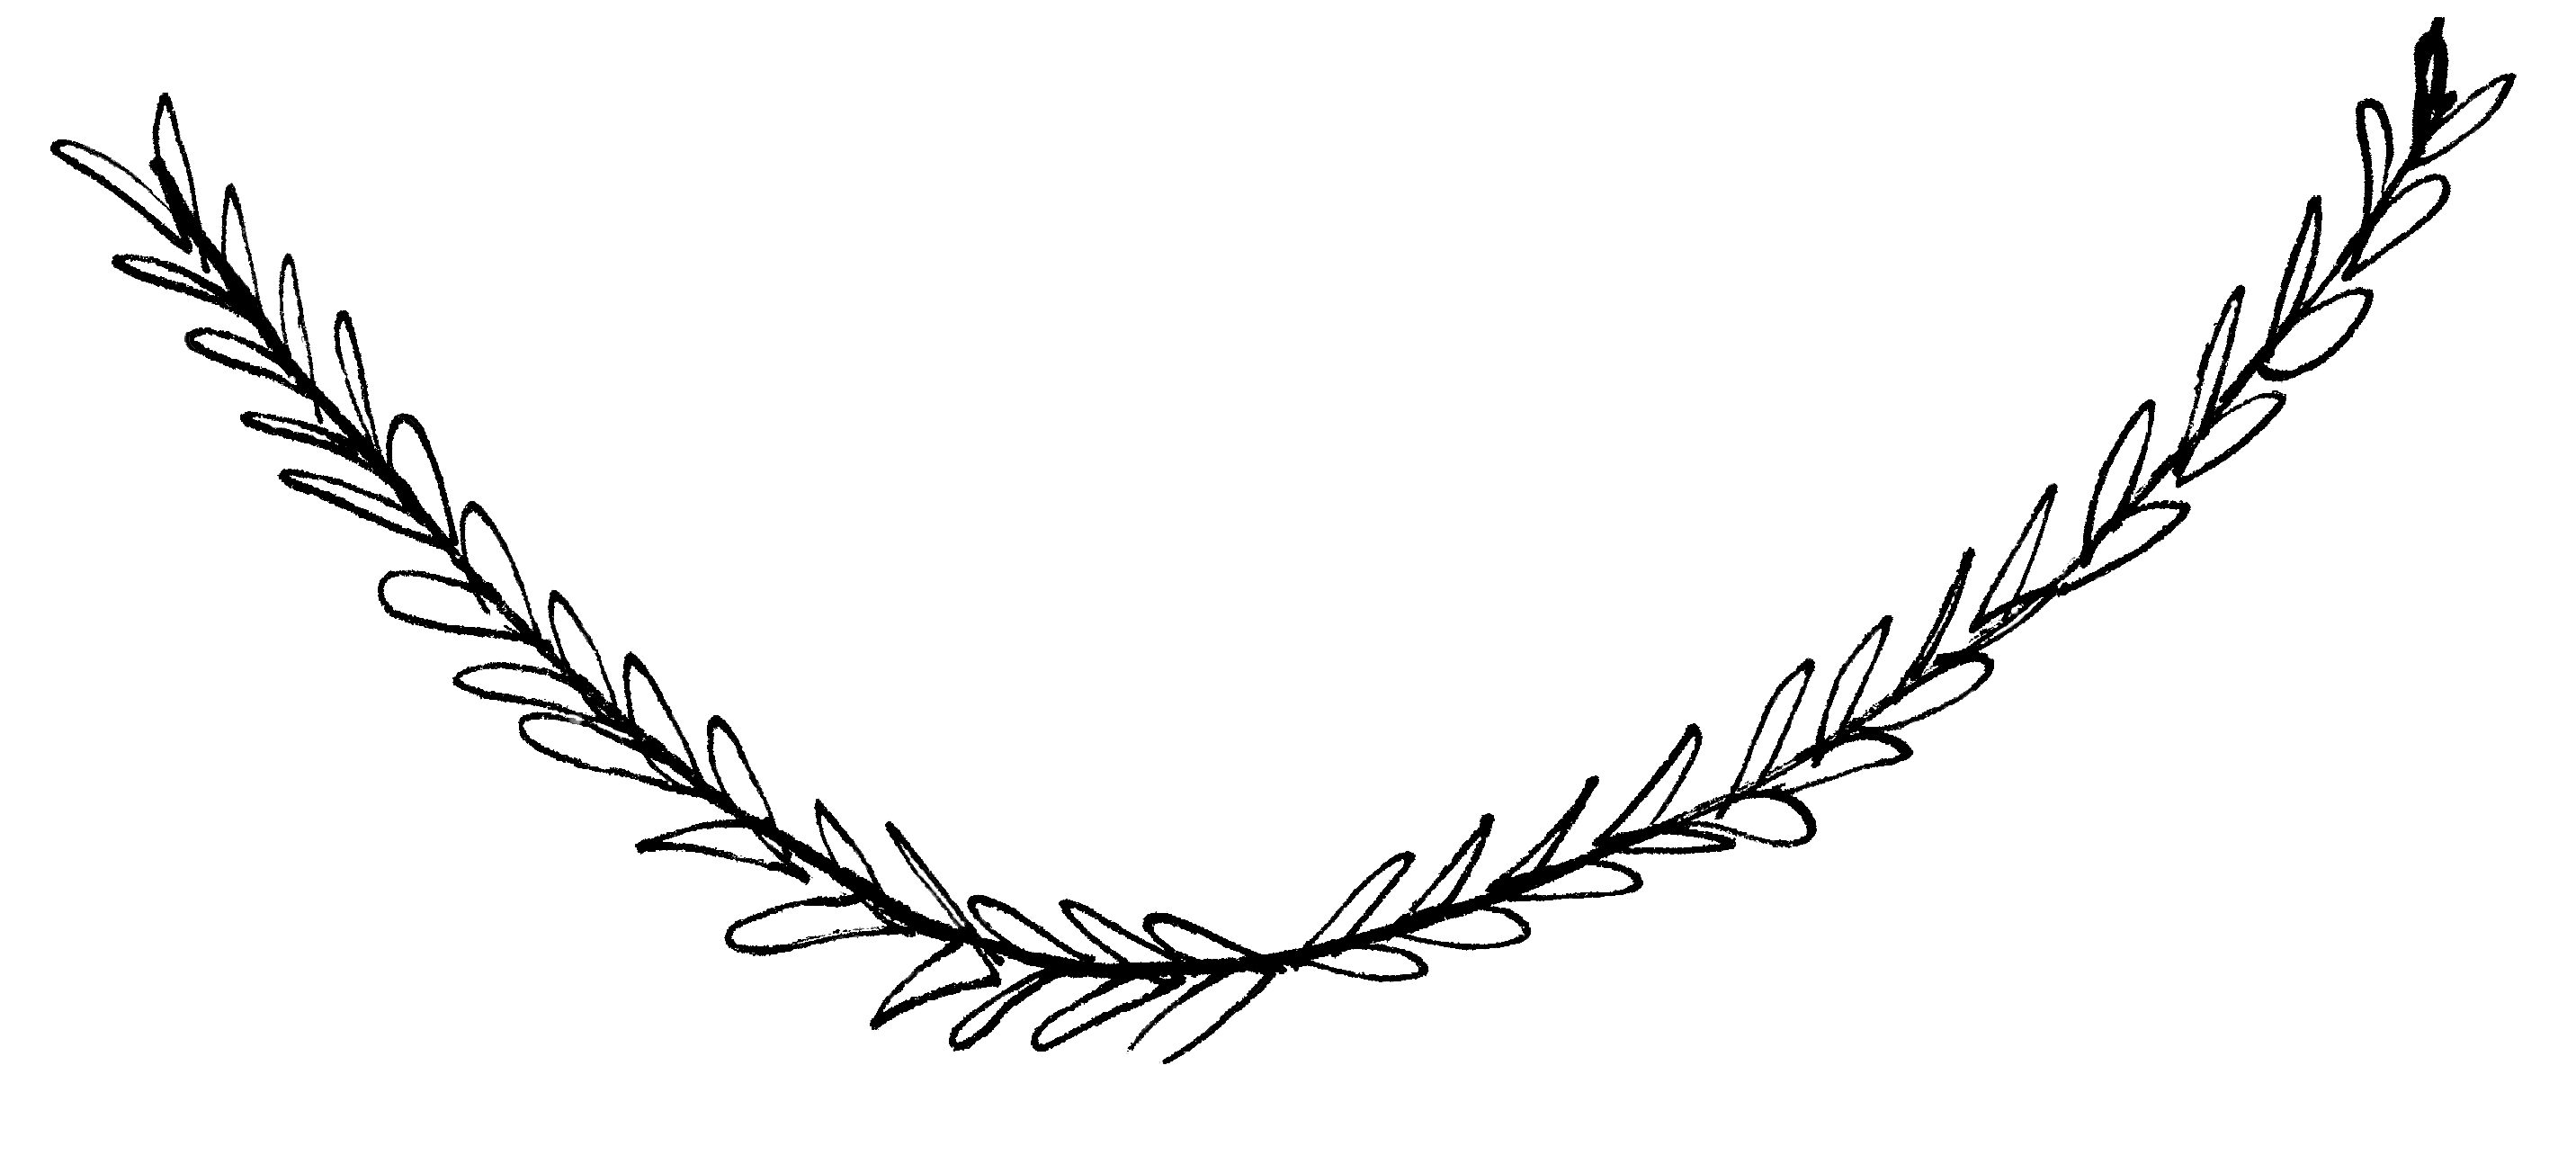 Drawn hearts png white To click png Lace right